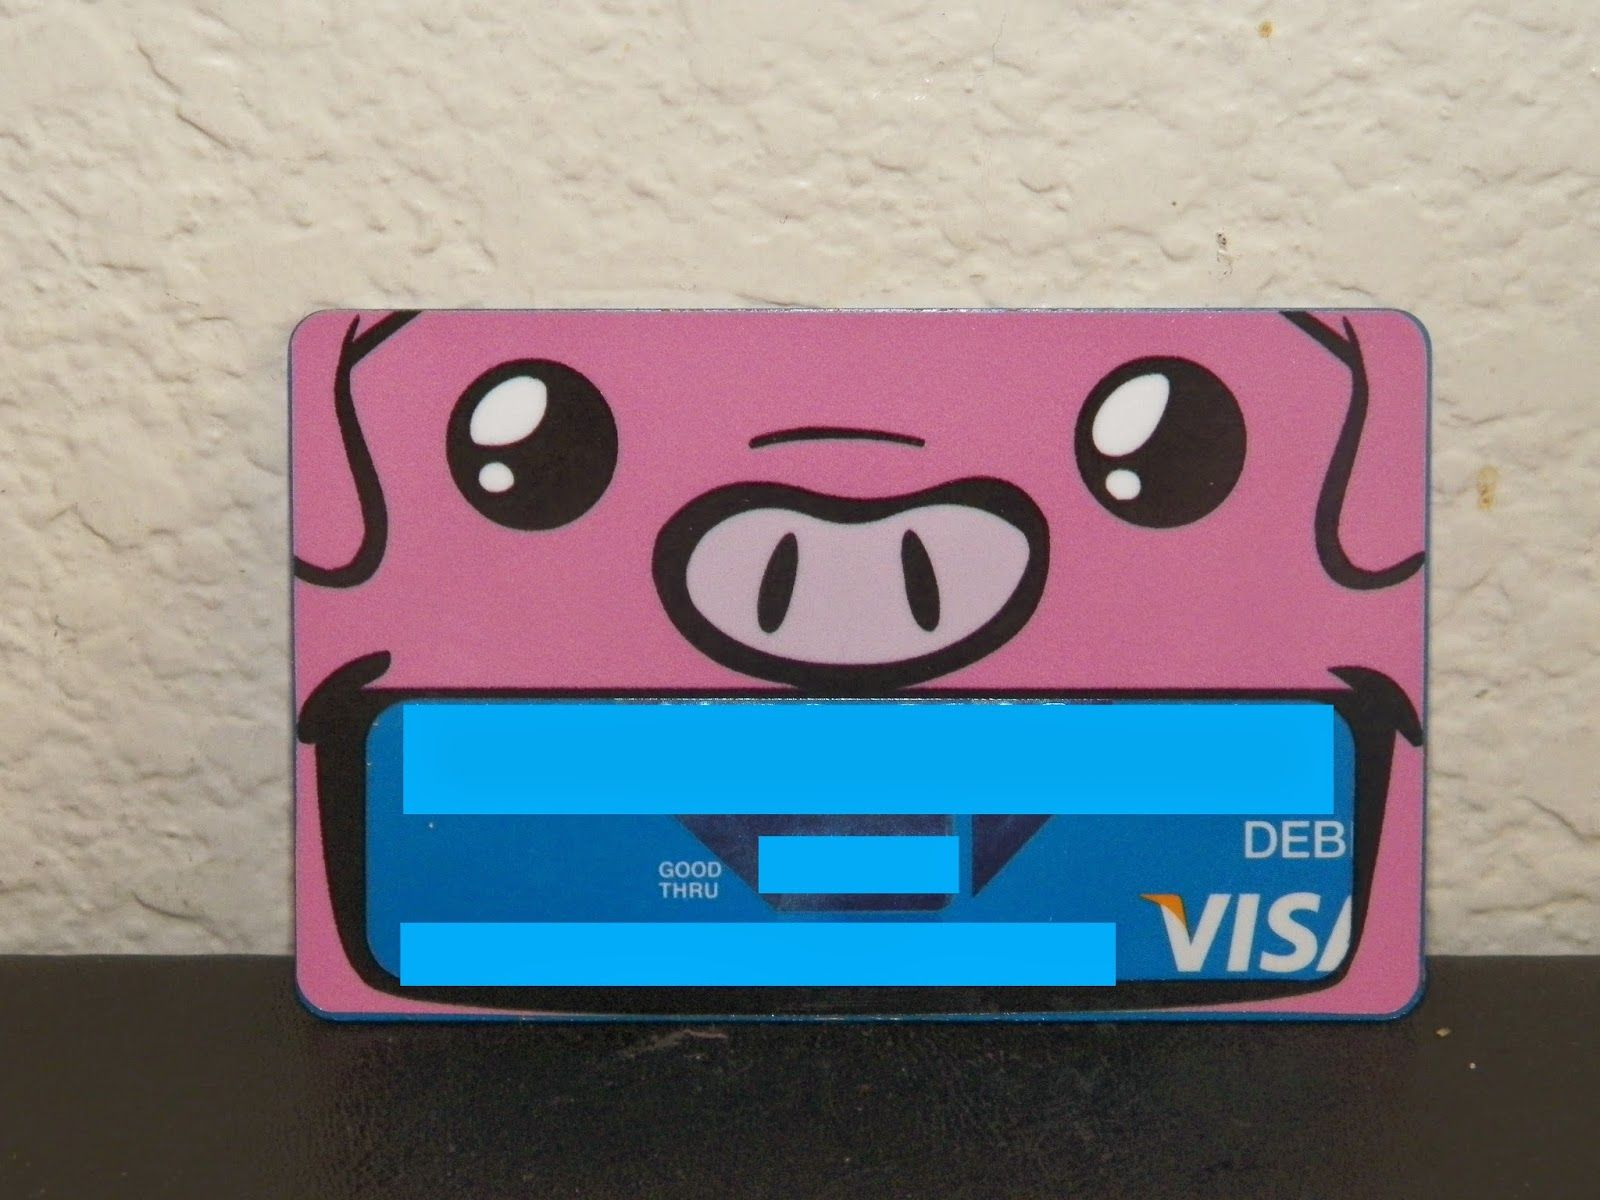 Mygreatfinds Creditcovers Cool And Cute Skins For Credit Cards Review Giveaway 2 4 Us C Debit Card Design Free Business Card Design Download Business Card